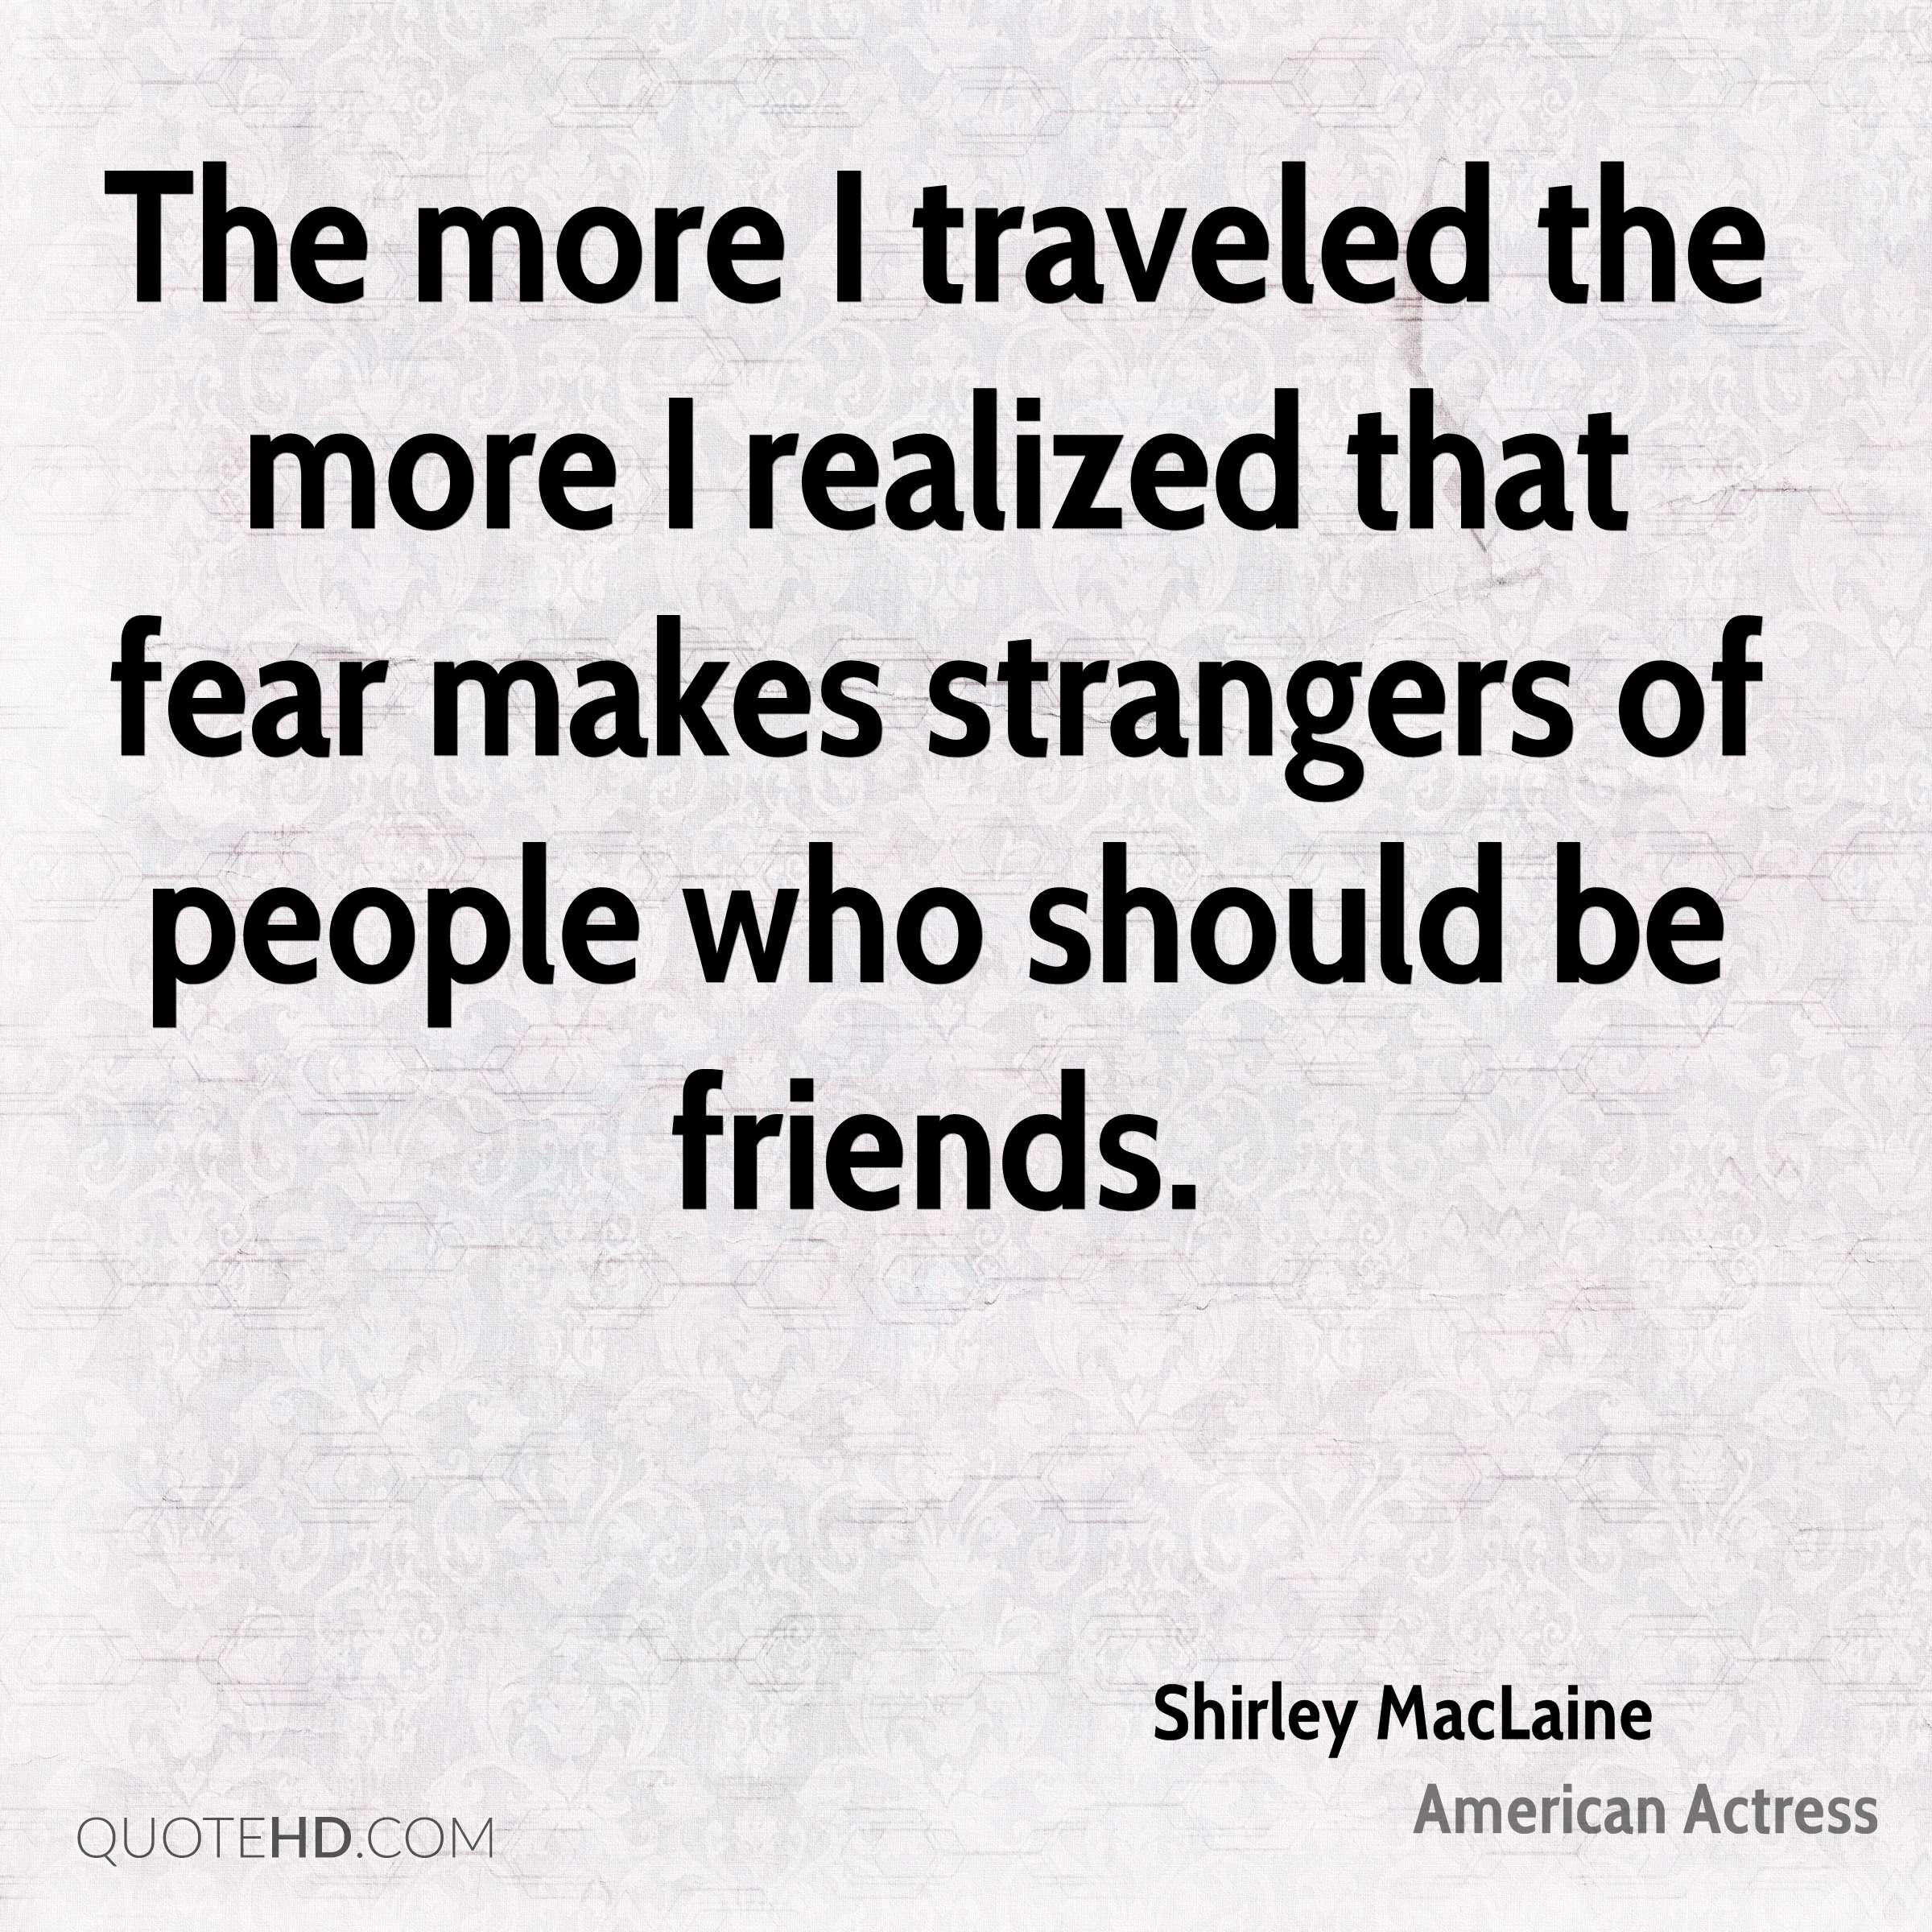 The more I traveled the more I realized that fear makes strangers of people who should be friends.